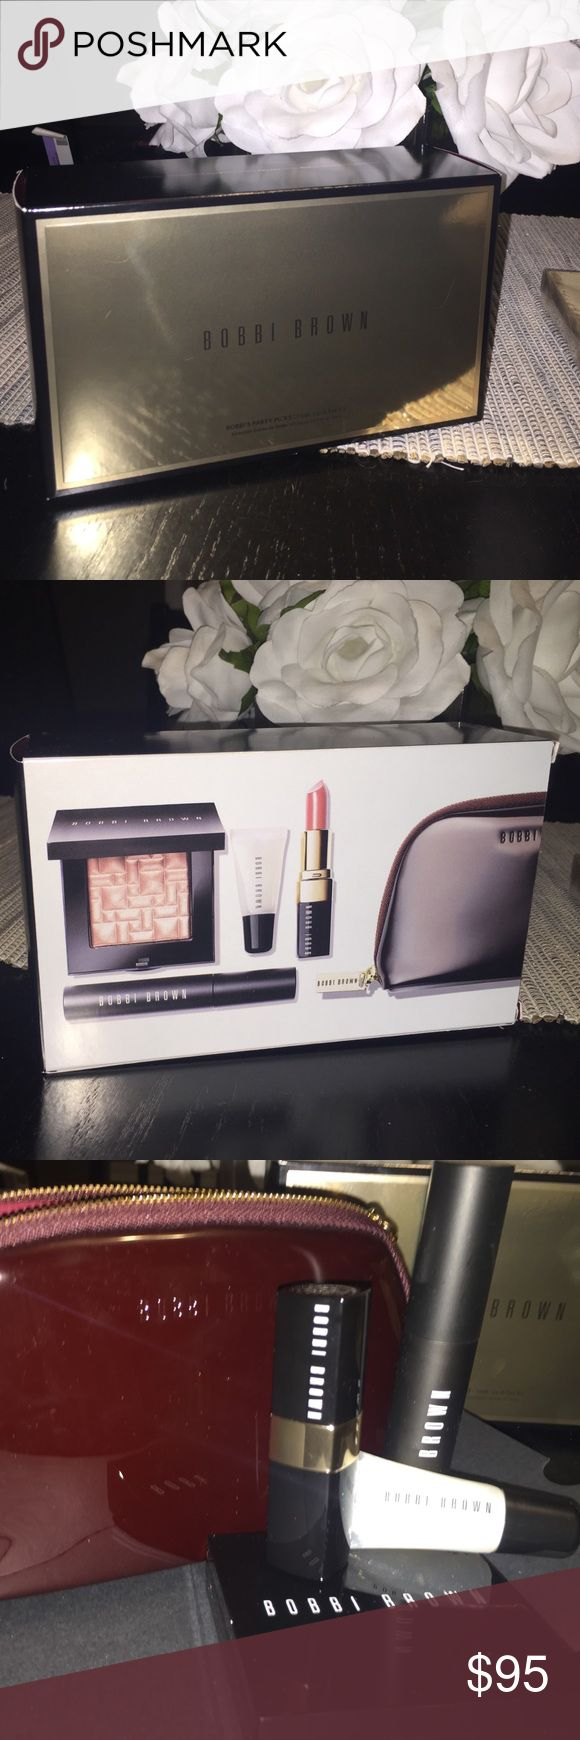 "Brand New Bobbi Brown Party Picks! Brand new just opened to take pictures of. Includes Bobbi's favorite party picks which includes: Highlighting powder, Eye opening mascara, Lip stick ""Alice's favorite"", Glitter lip gloss, and an exclusive Bobbi Brown cosmetic bag!! Bobbi Brown Makeup"